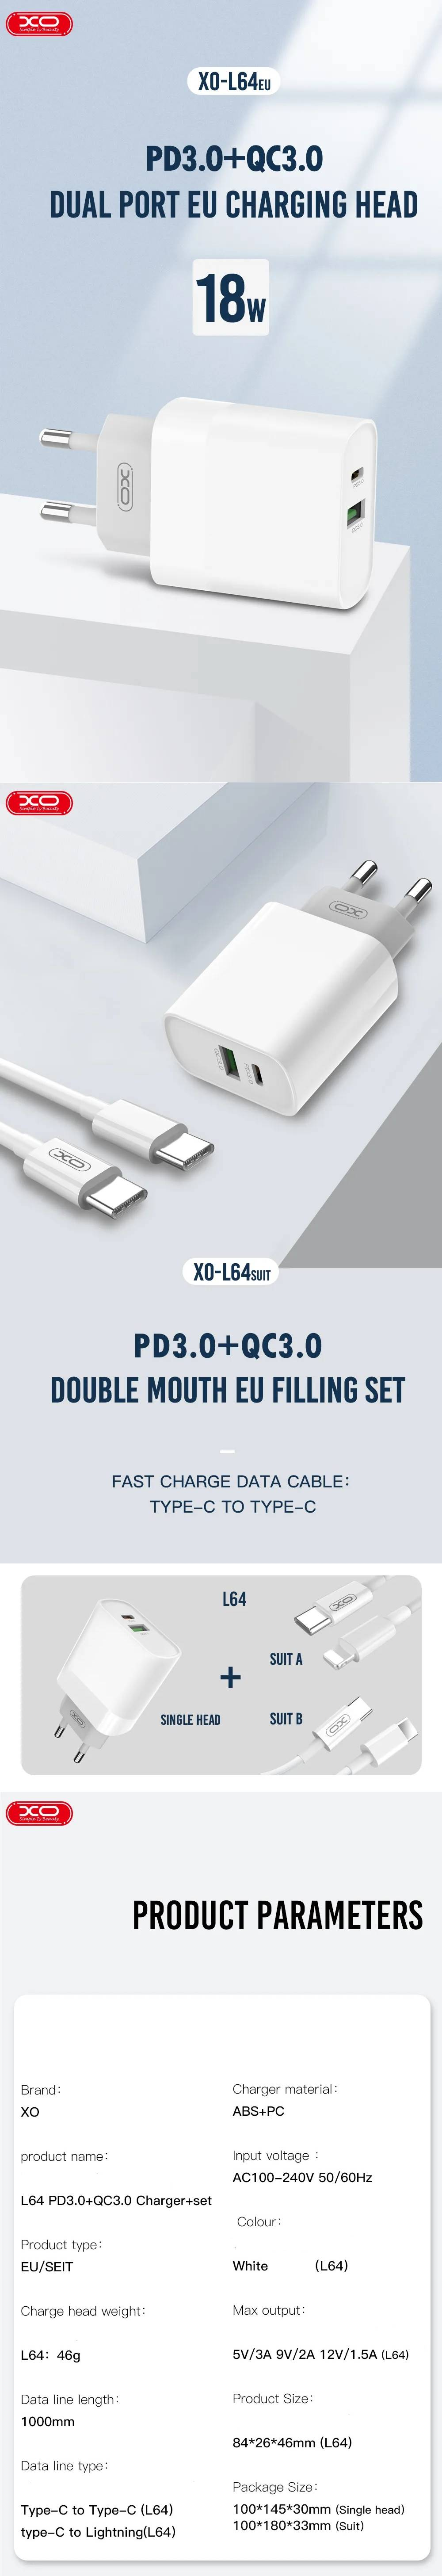 XO Wall charger L64 plus cable type-C - type-C white 2USB QC3.0/ PD USB-C